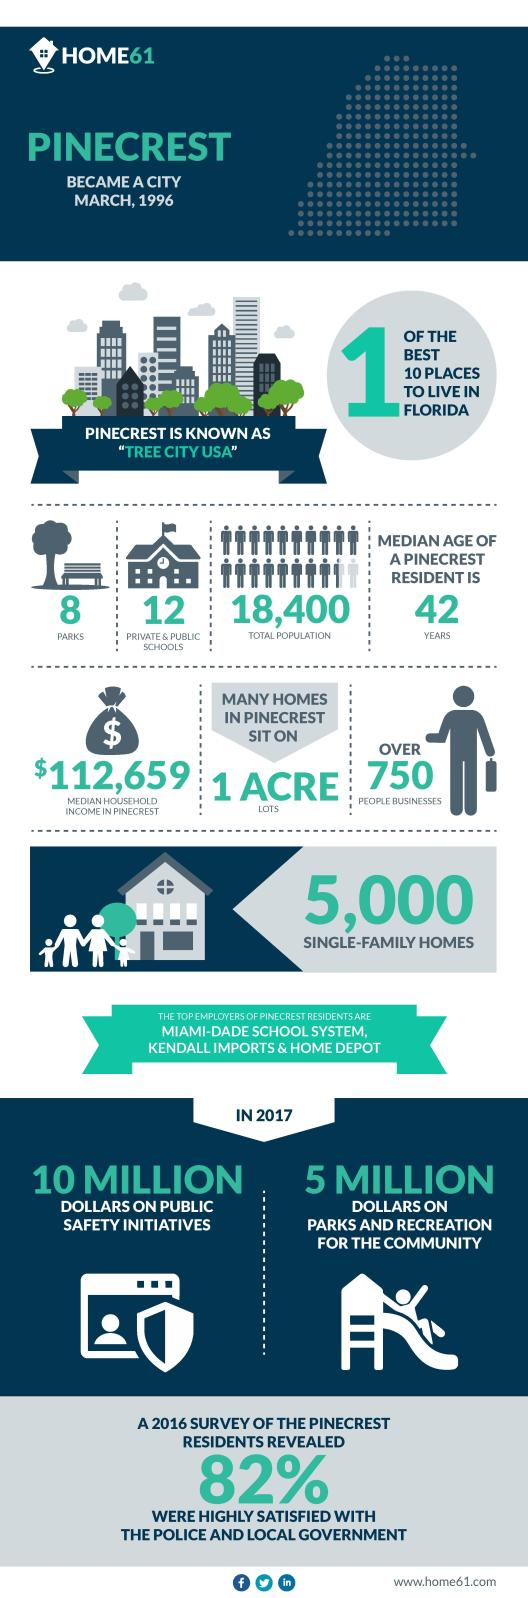 Everything You Need To Know About Pinecrest